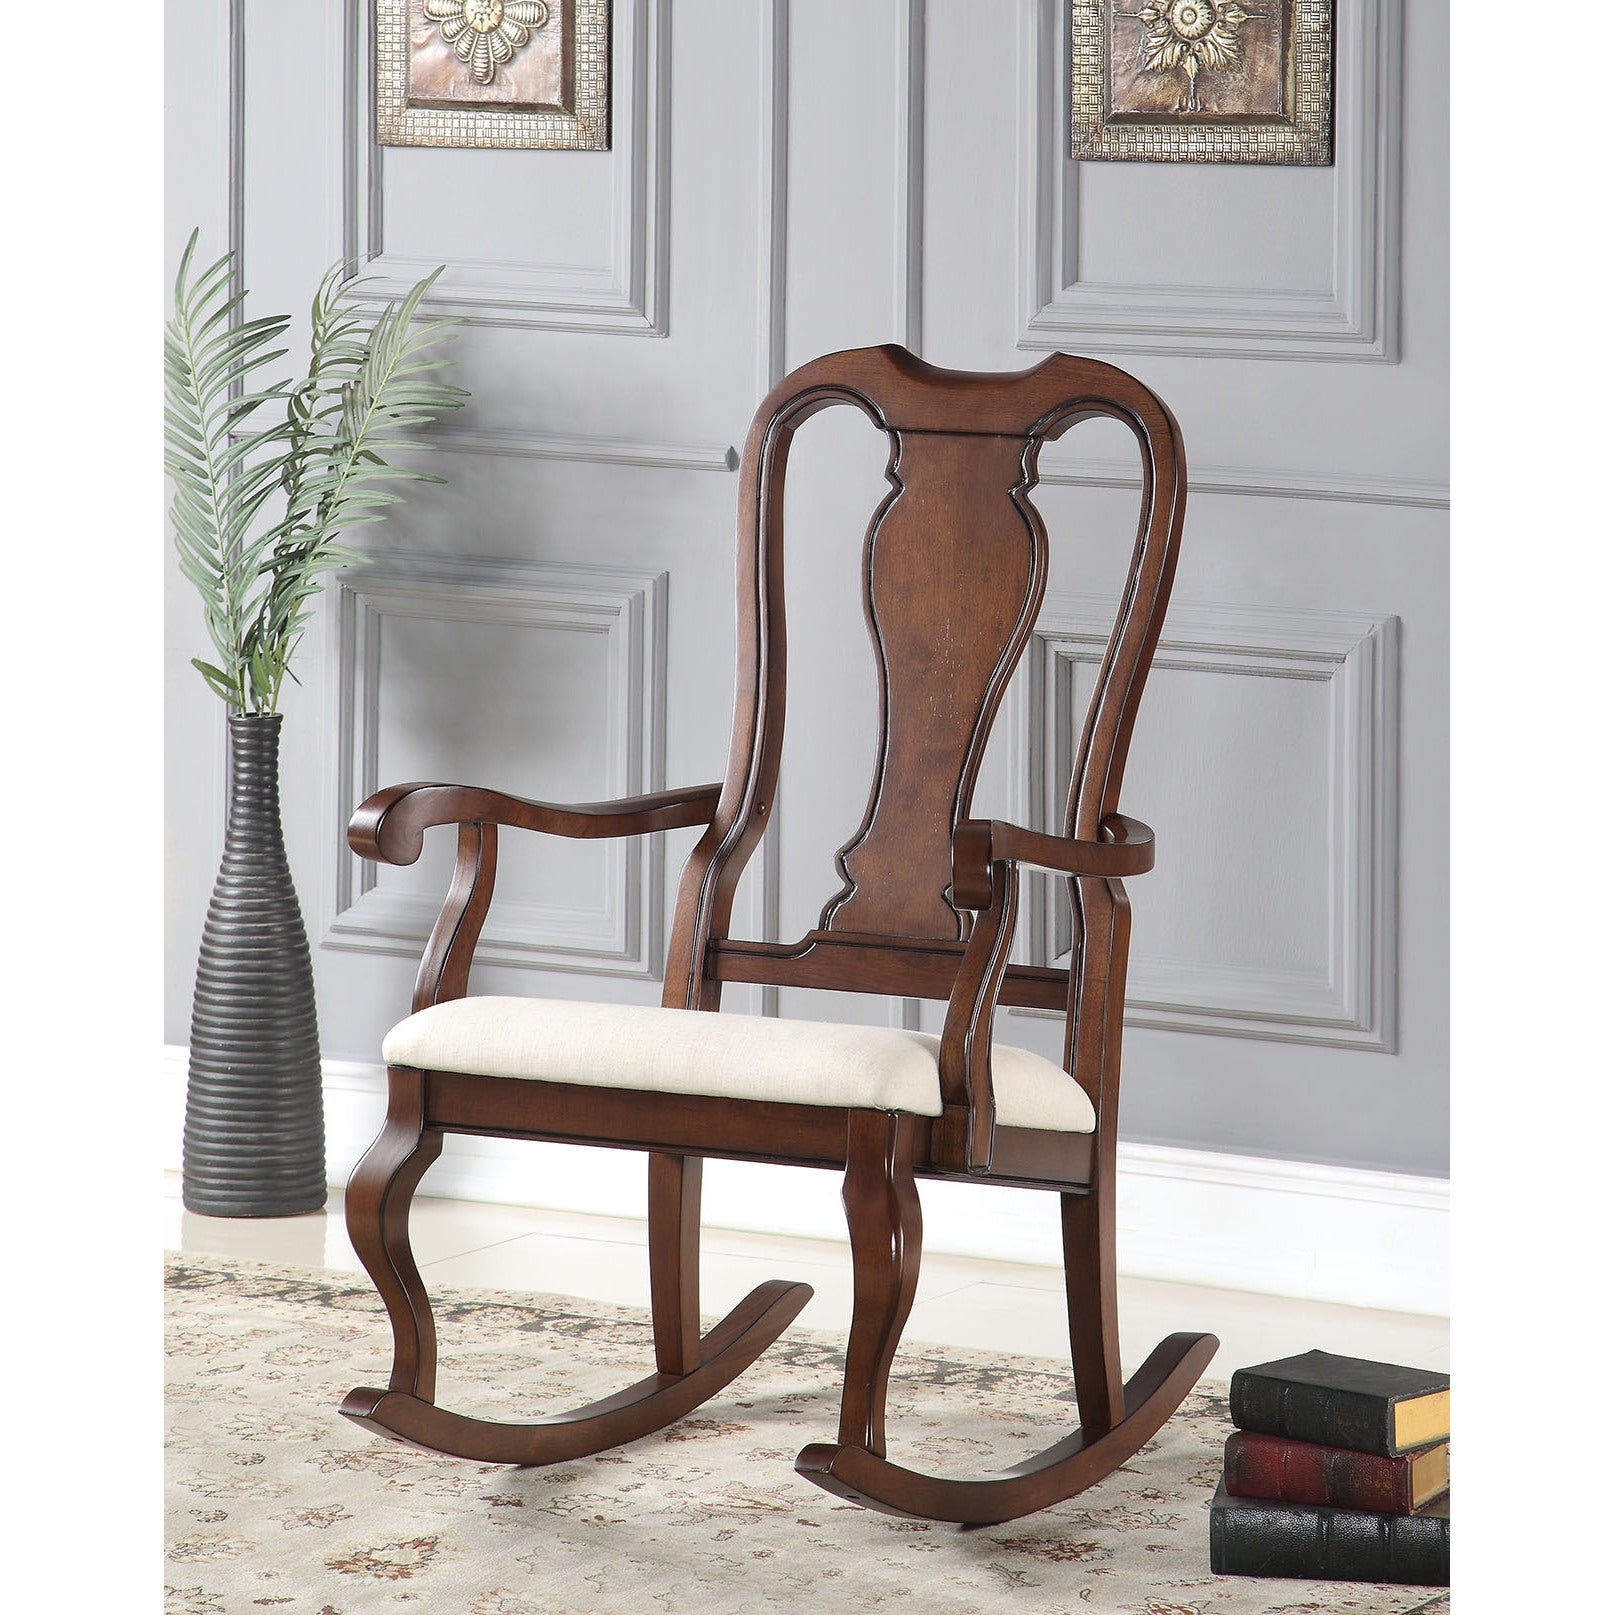 Wondrous Sheim Beige Fabric And Cherry Wood Rocking Chair Gmtry Best Dining Table And Chair Ideas Images Gmtryco